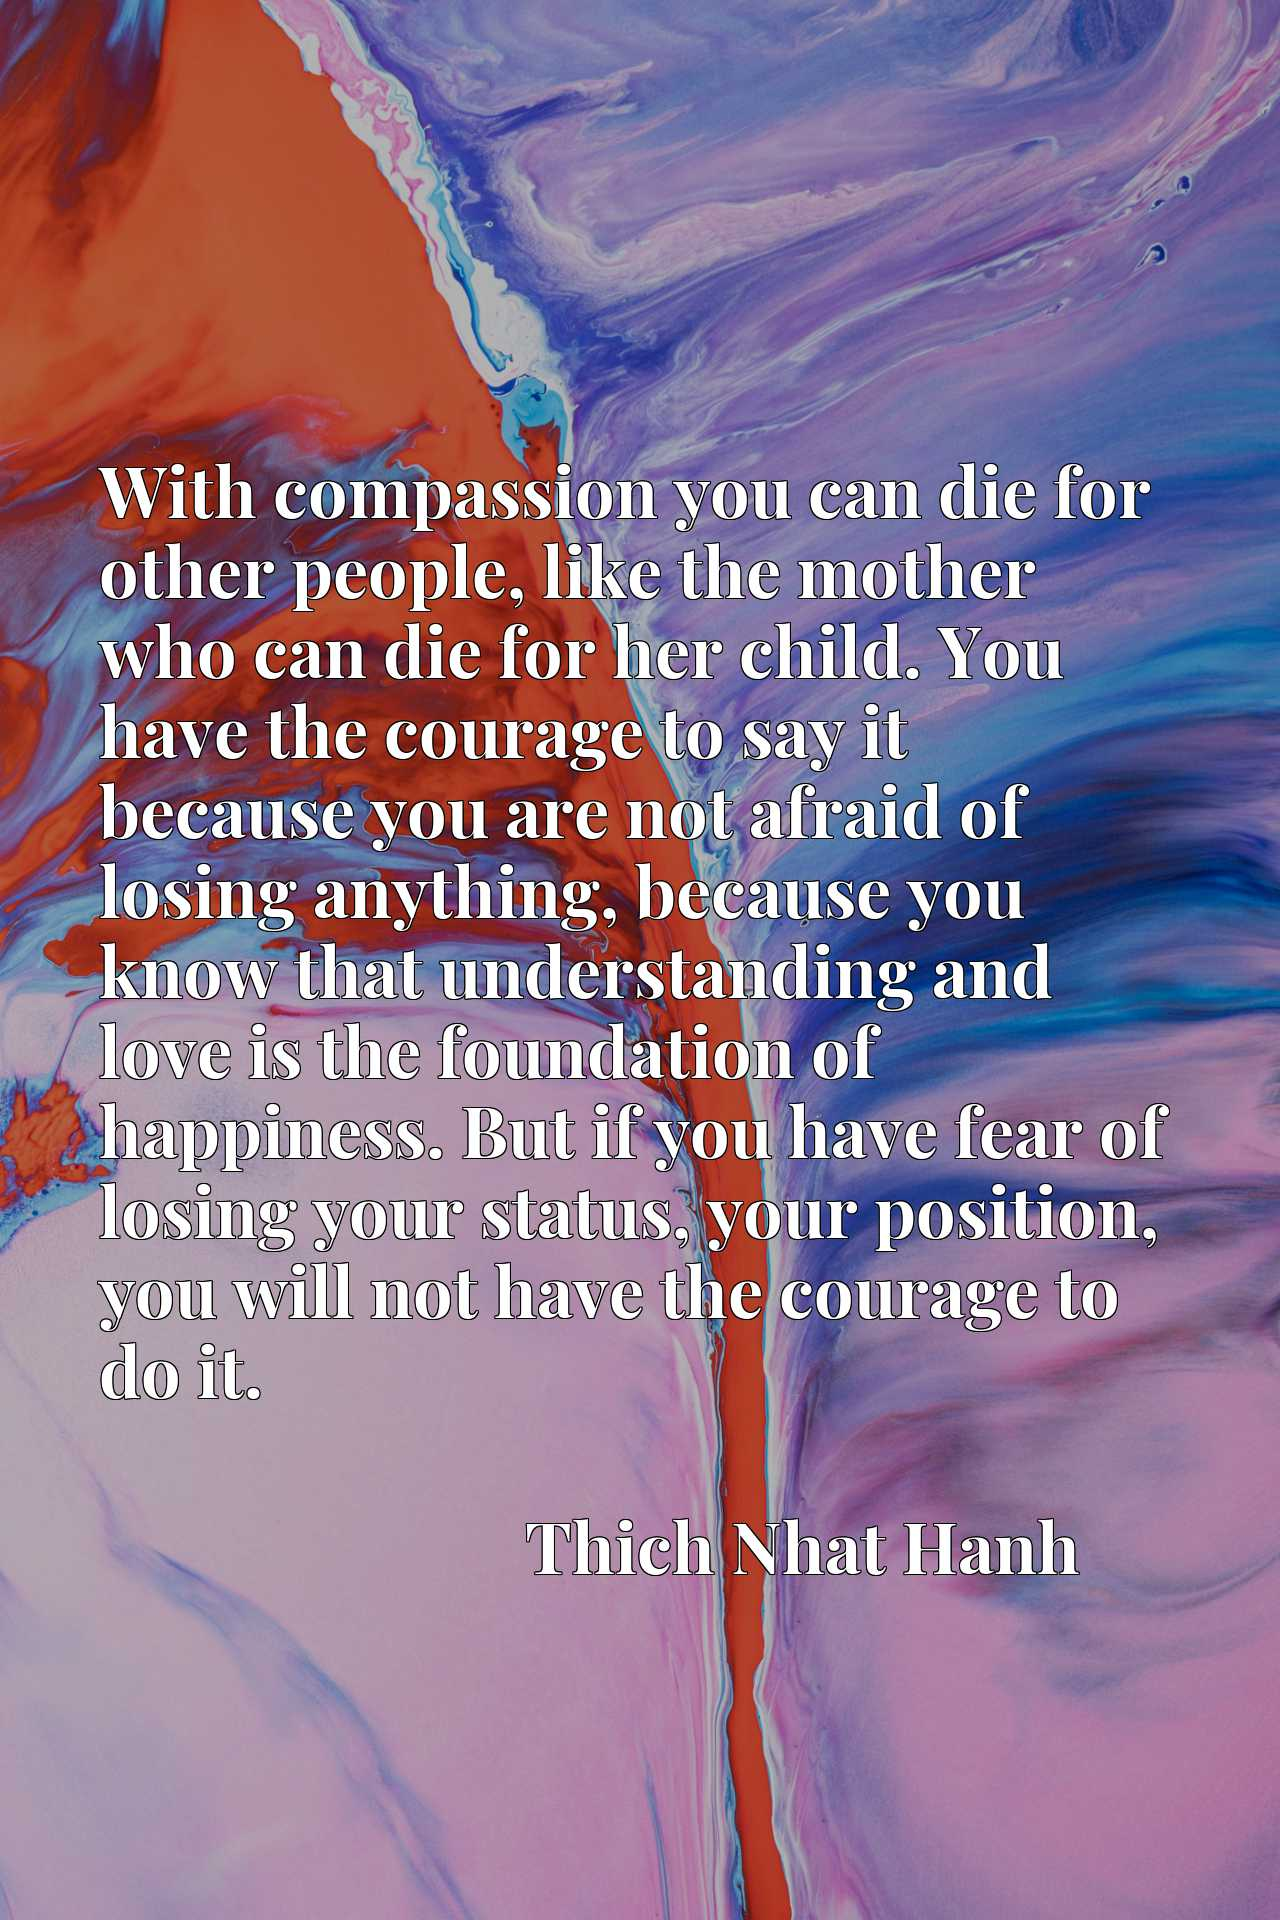 With compassion you can die for other people, like the mother who can die for her child. You have the courage to say it because you are not afraid of losing anything, because you know that understanding and love is the foundation of happiness. But if you have fear of losing your status, your position, you will not have the courage to do it.